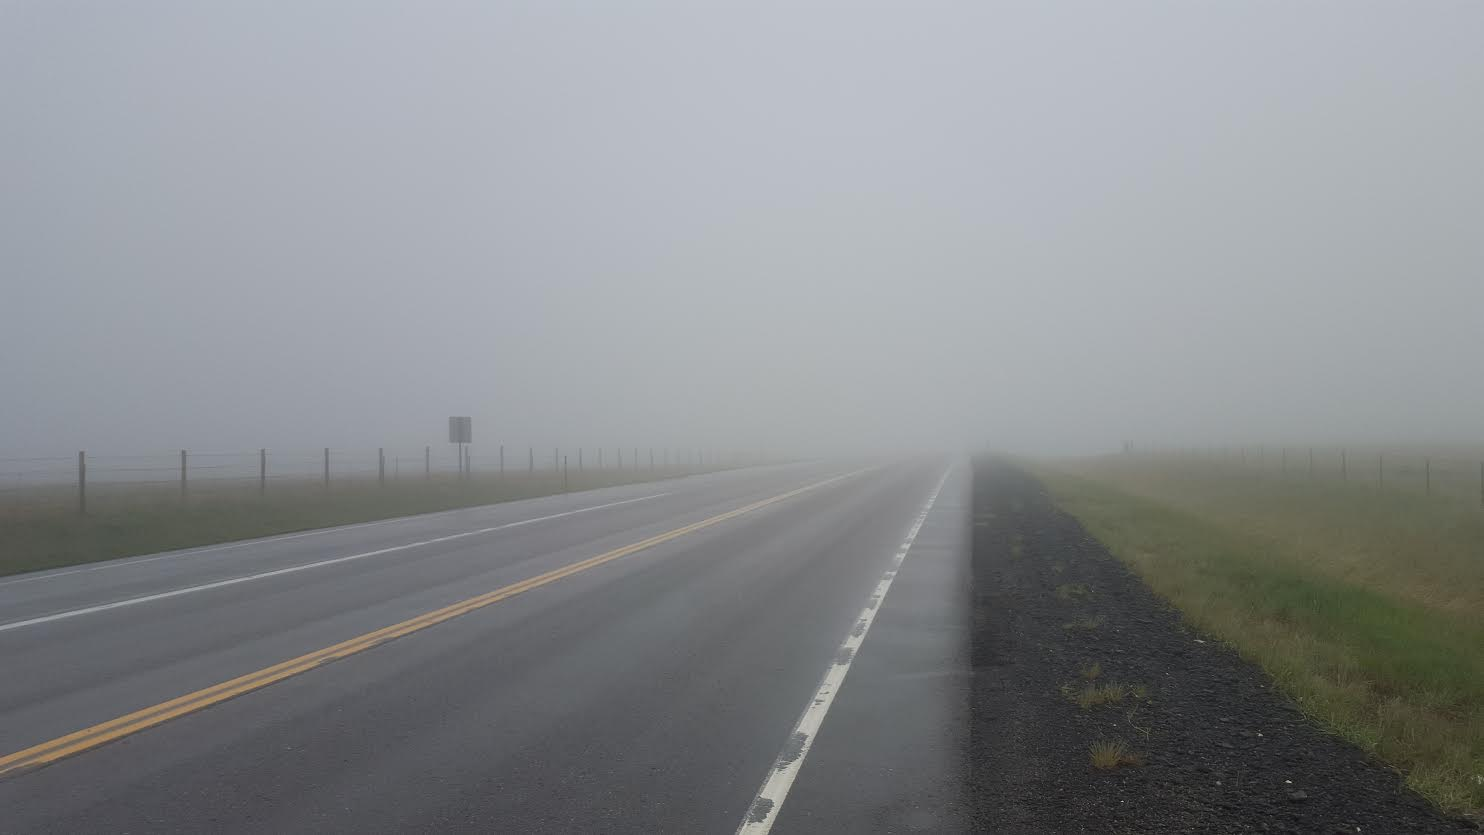 This is what the road looked like on Saturday's ride.